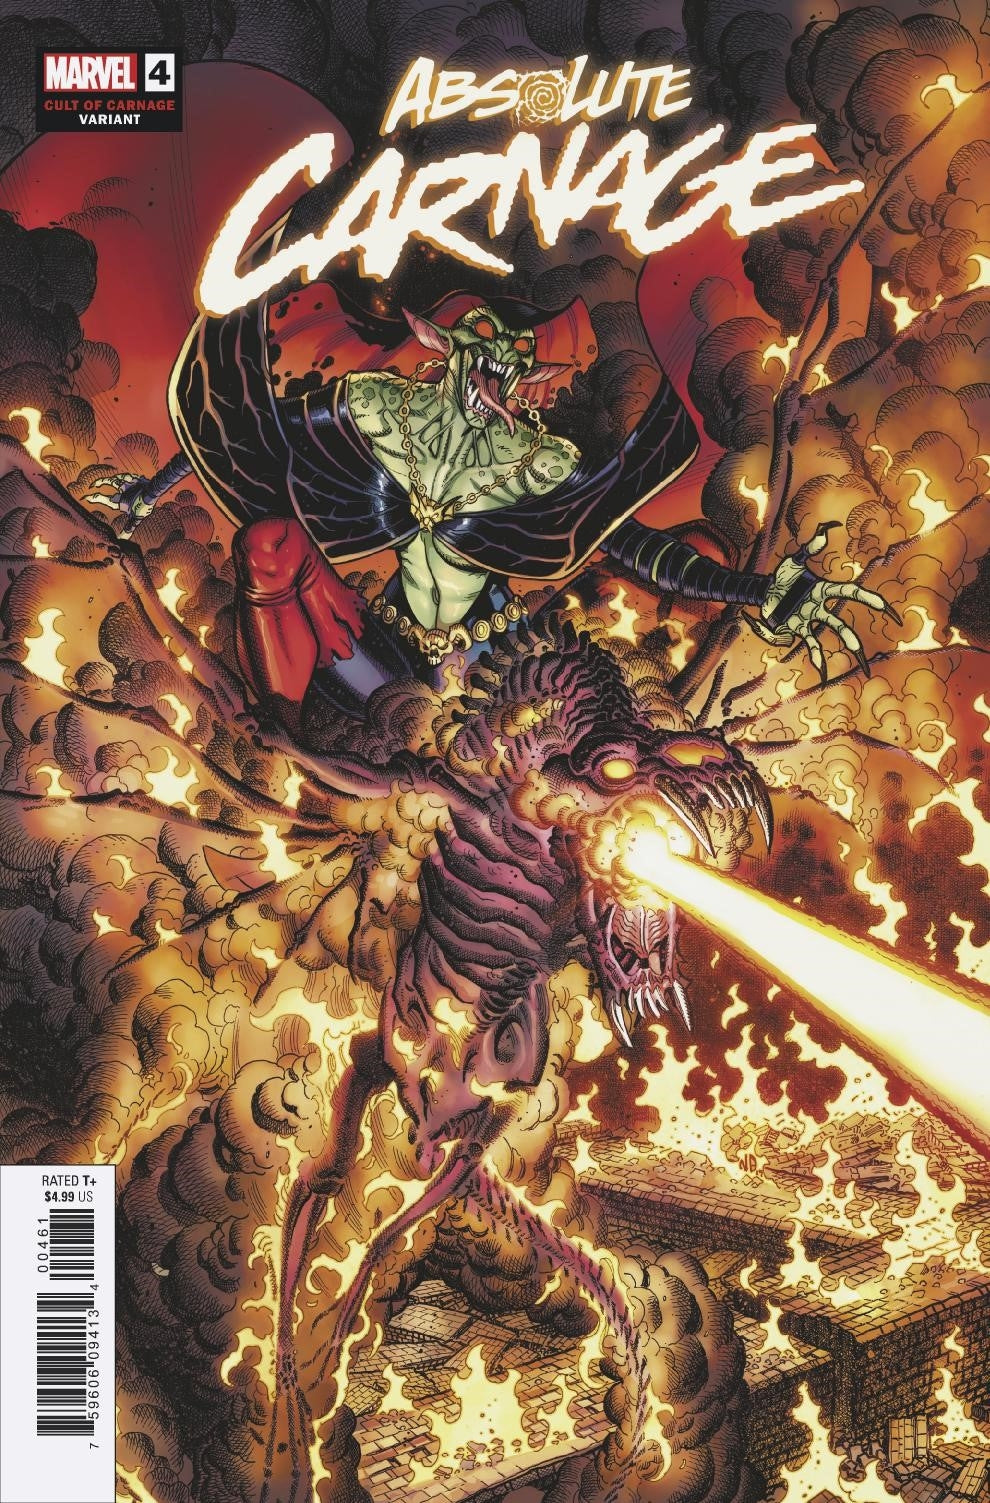 ABSOLUTE CARNAGE #4 (OF 5) BRADSHAW CULT OF CARNAGE VAR